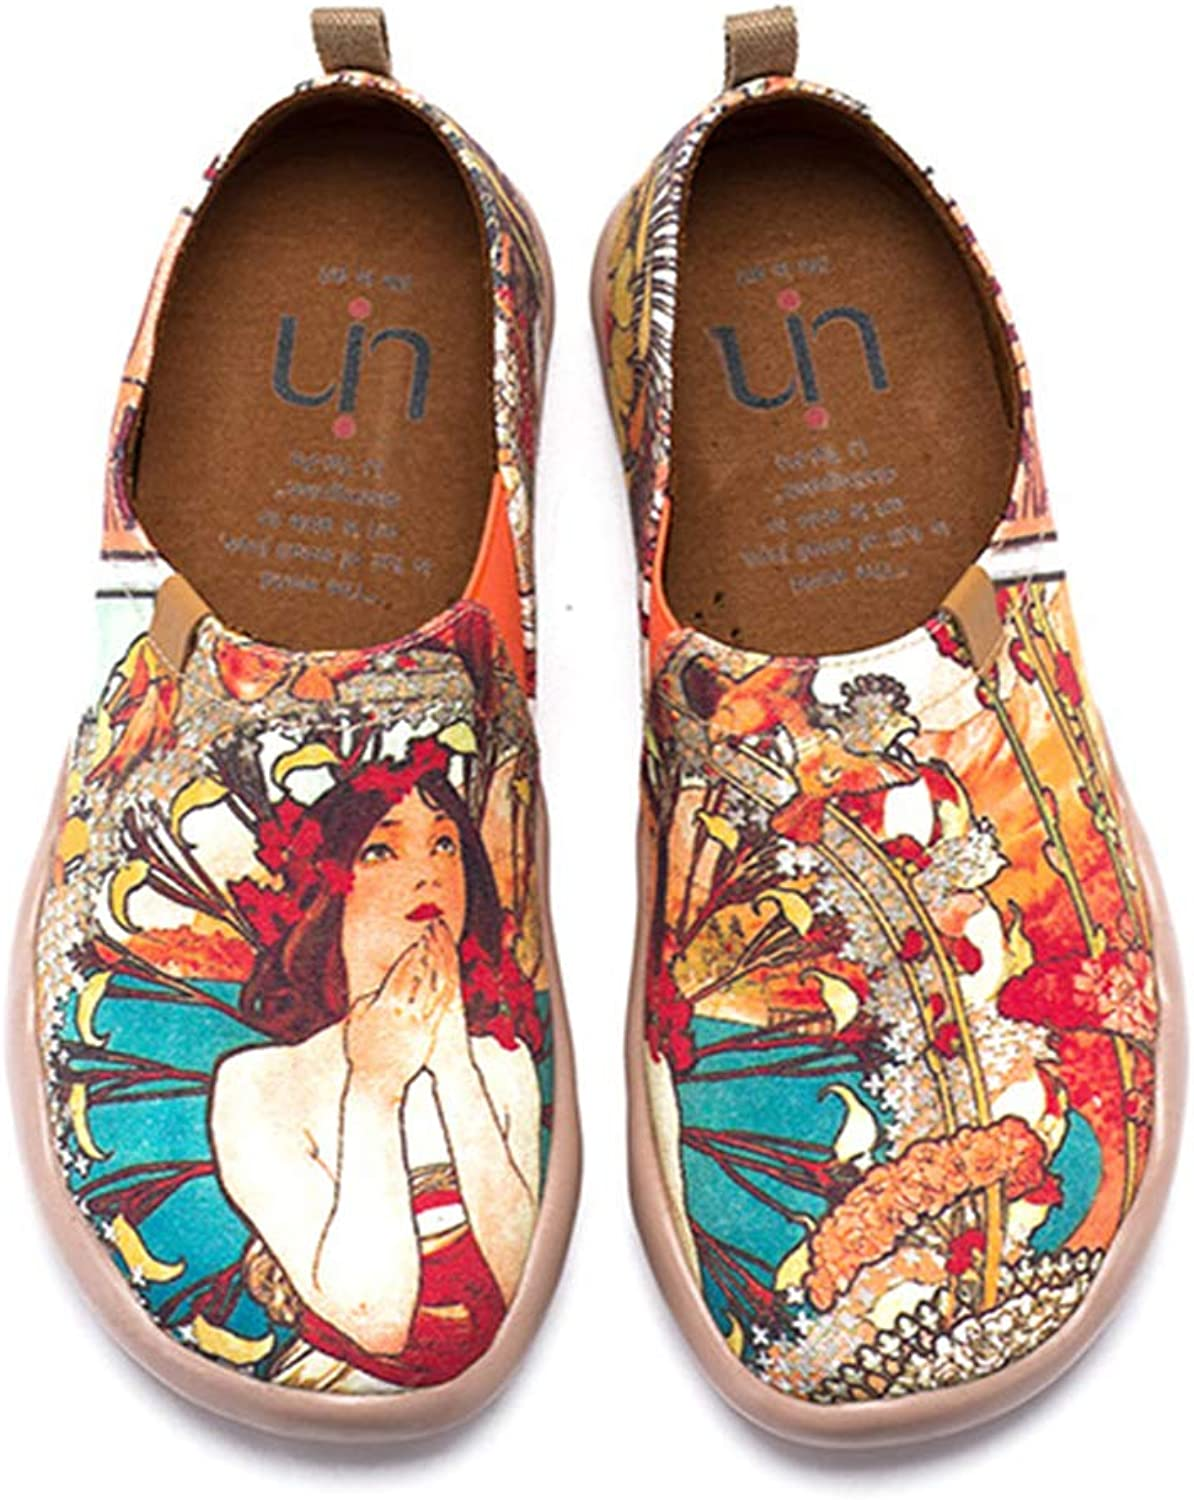 UIN Women's Monacan Girl Printed Canvas Walking shoes Multicolord